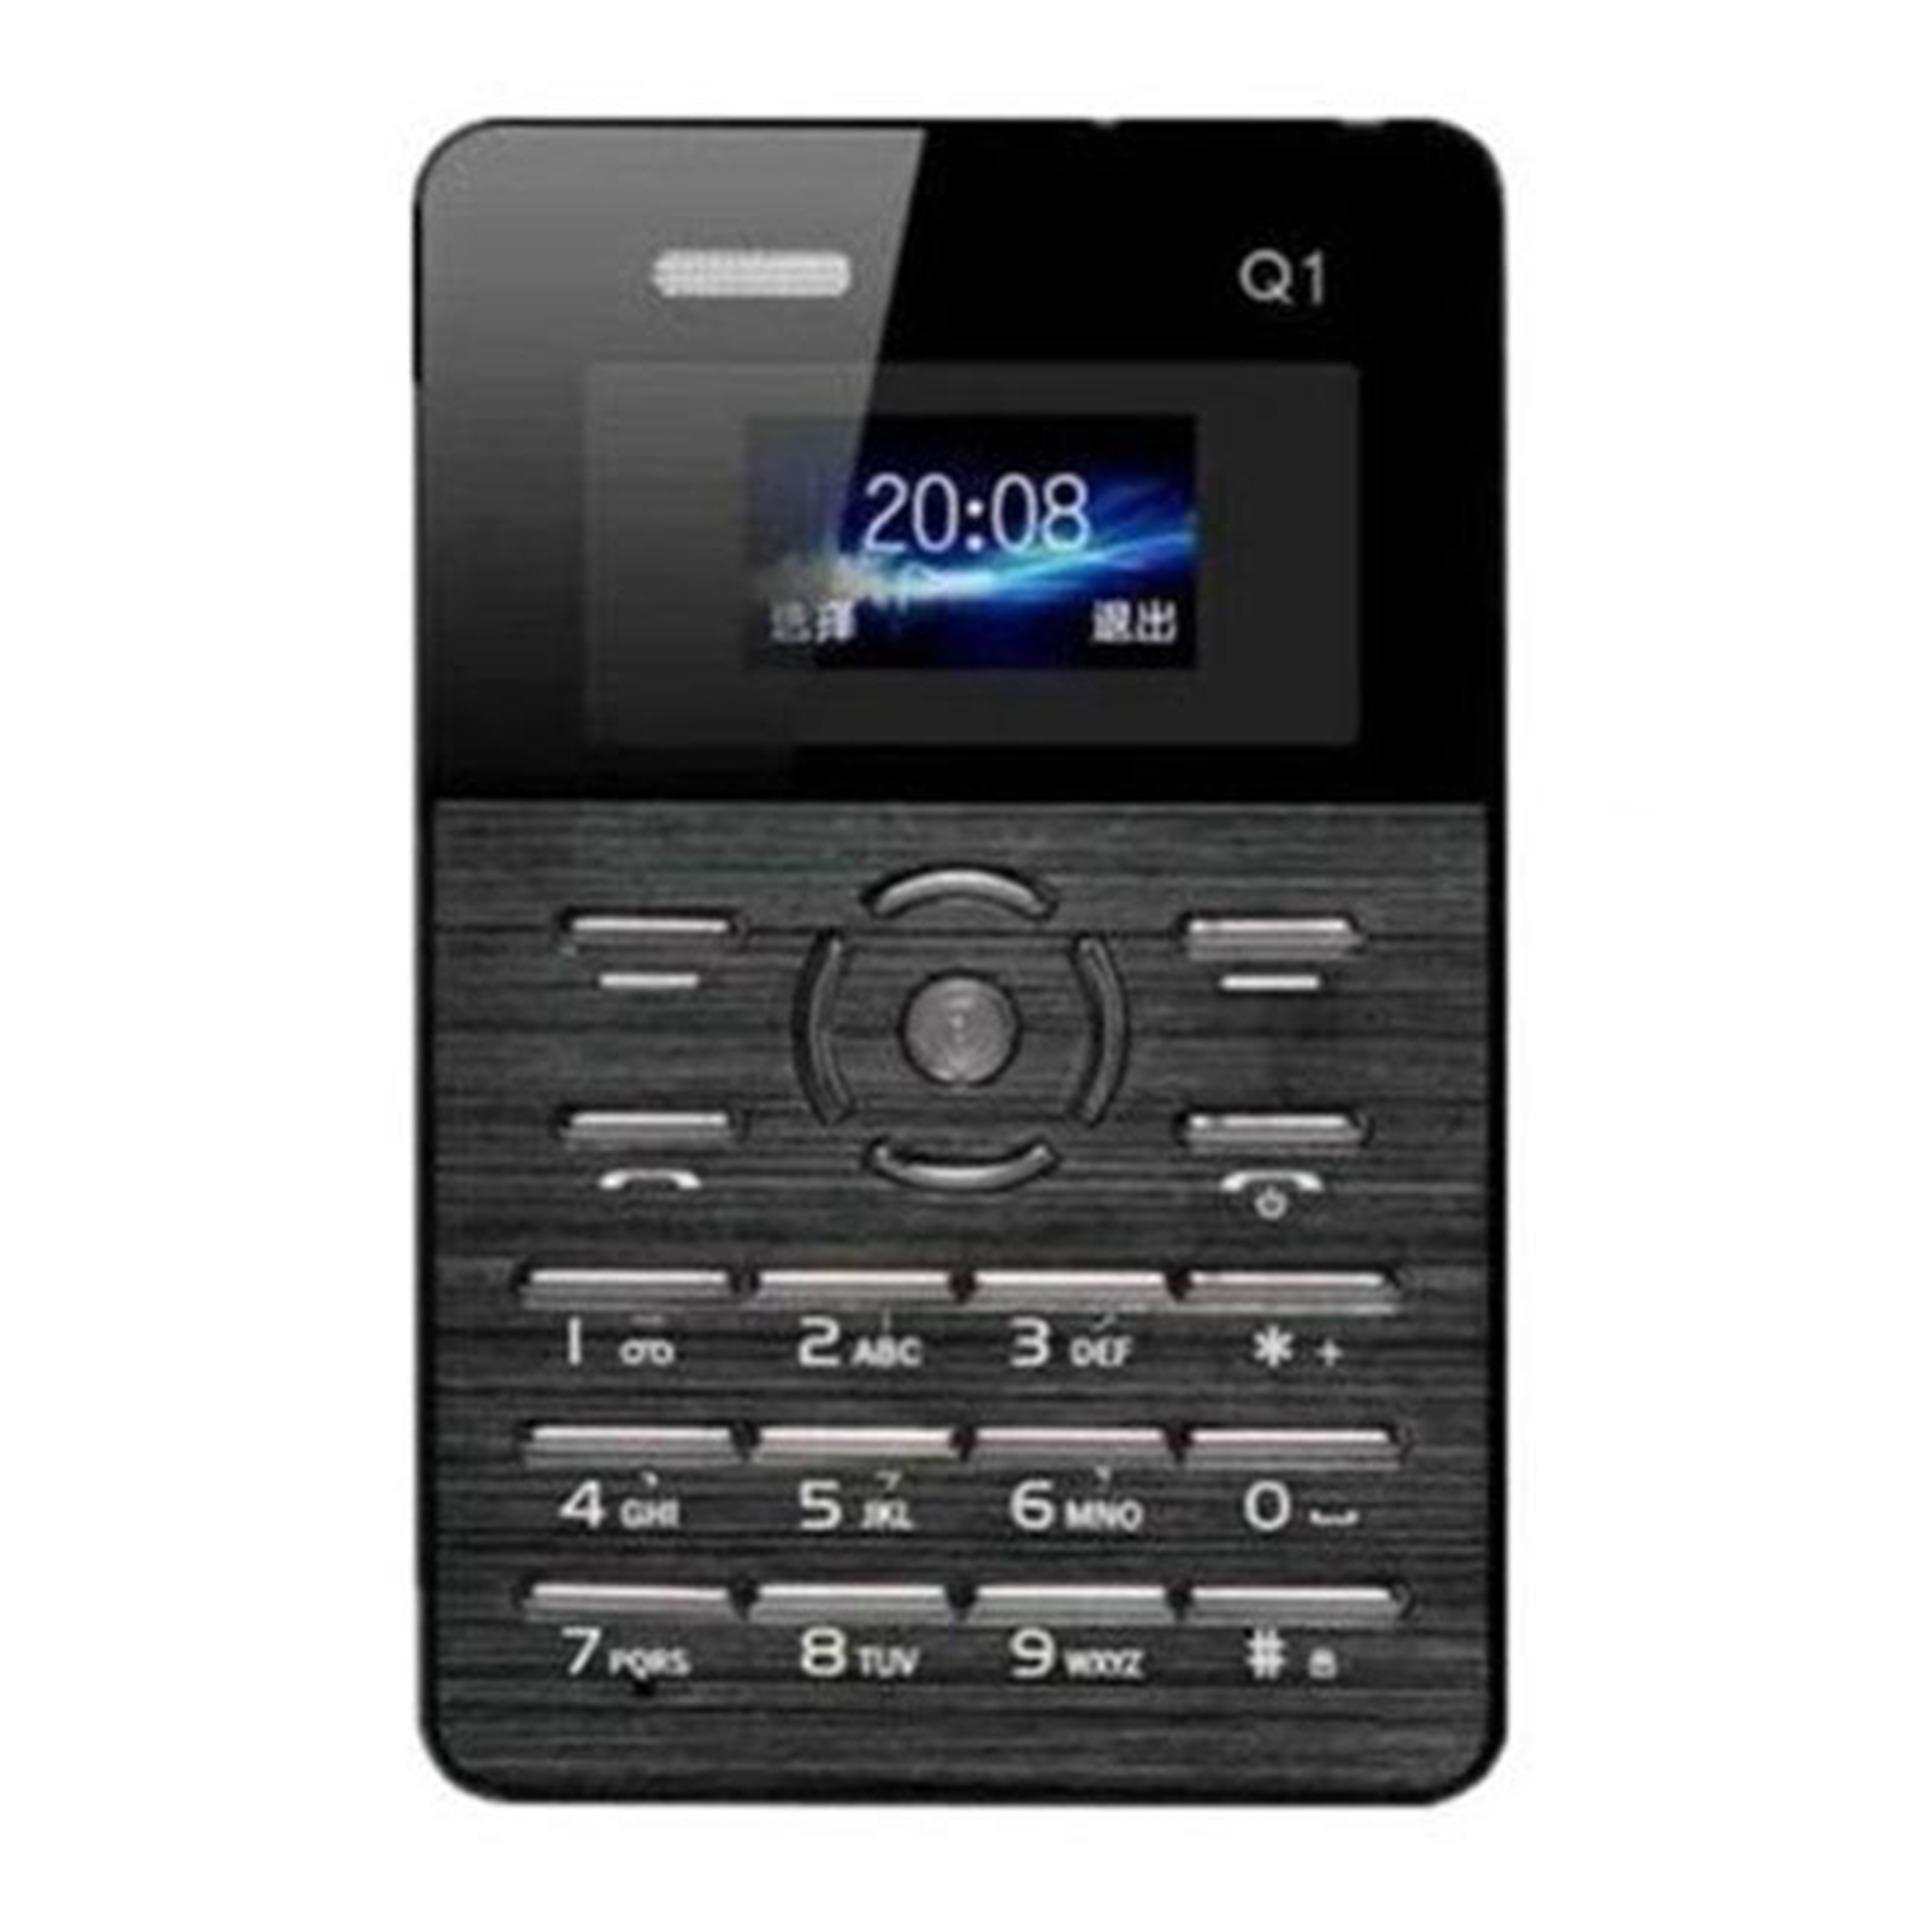 Mobile Phones Online Price In Bangladesh 2018 Nokia Asha 105 8 Mb Cyan Q1 Mini Card Black